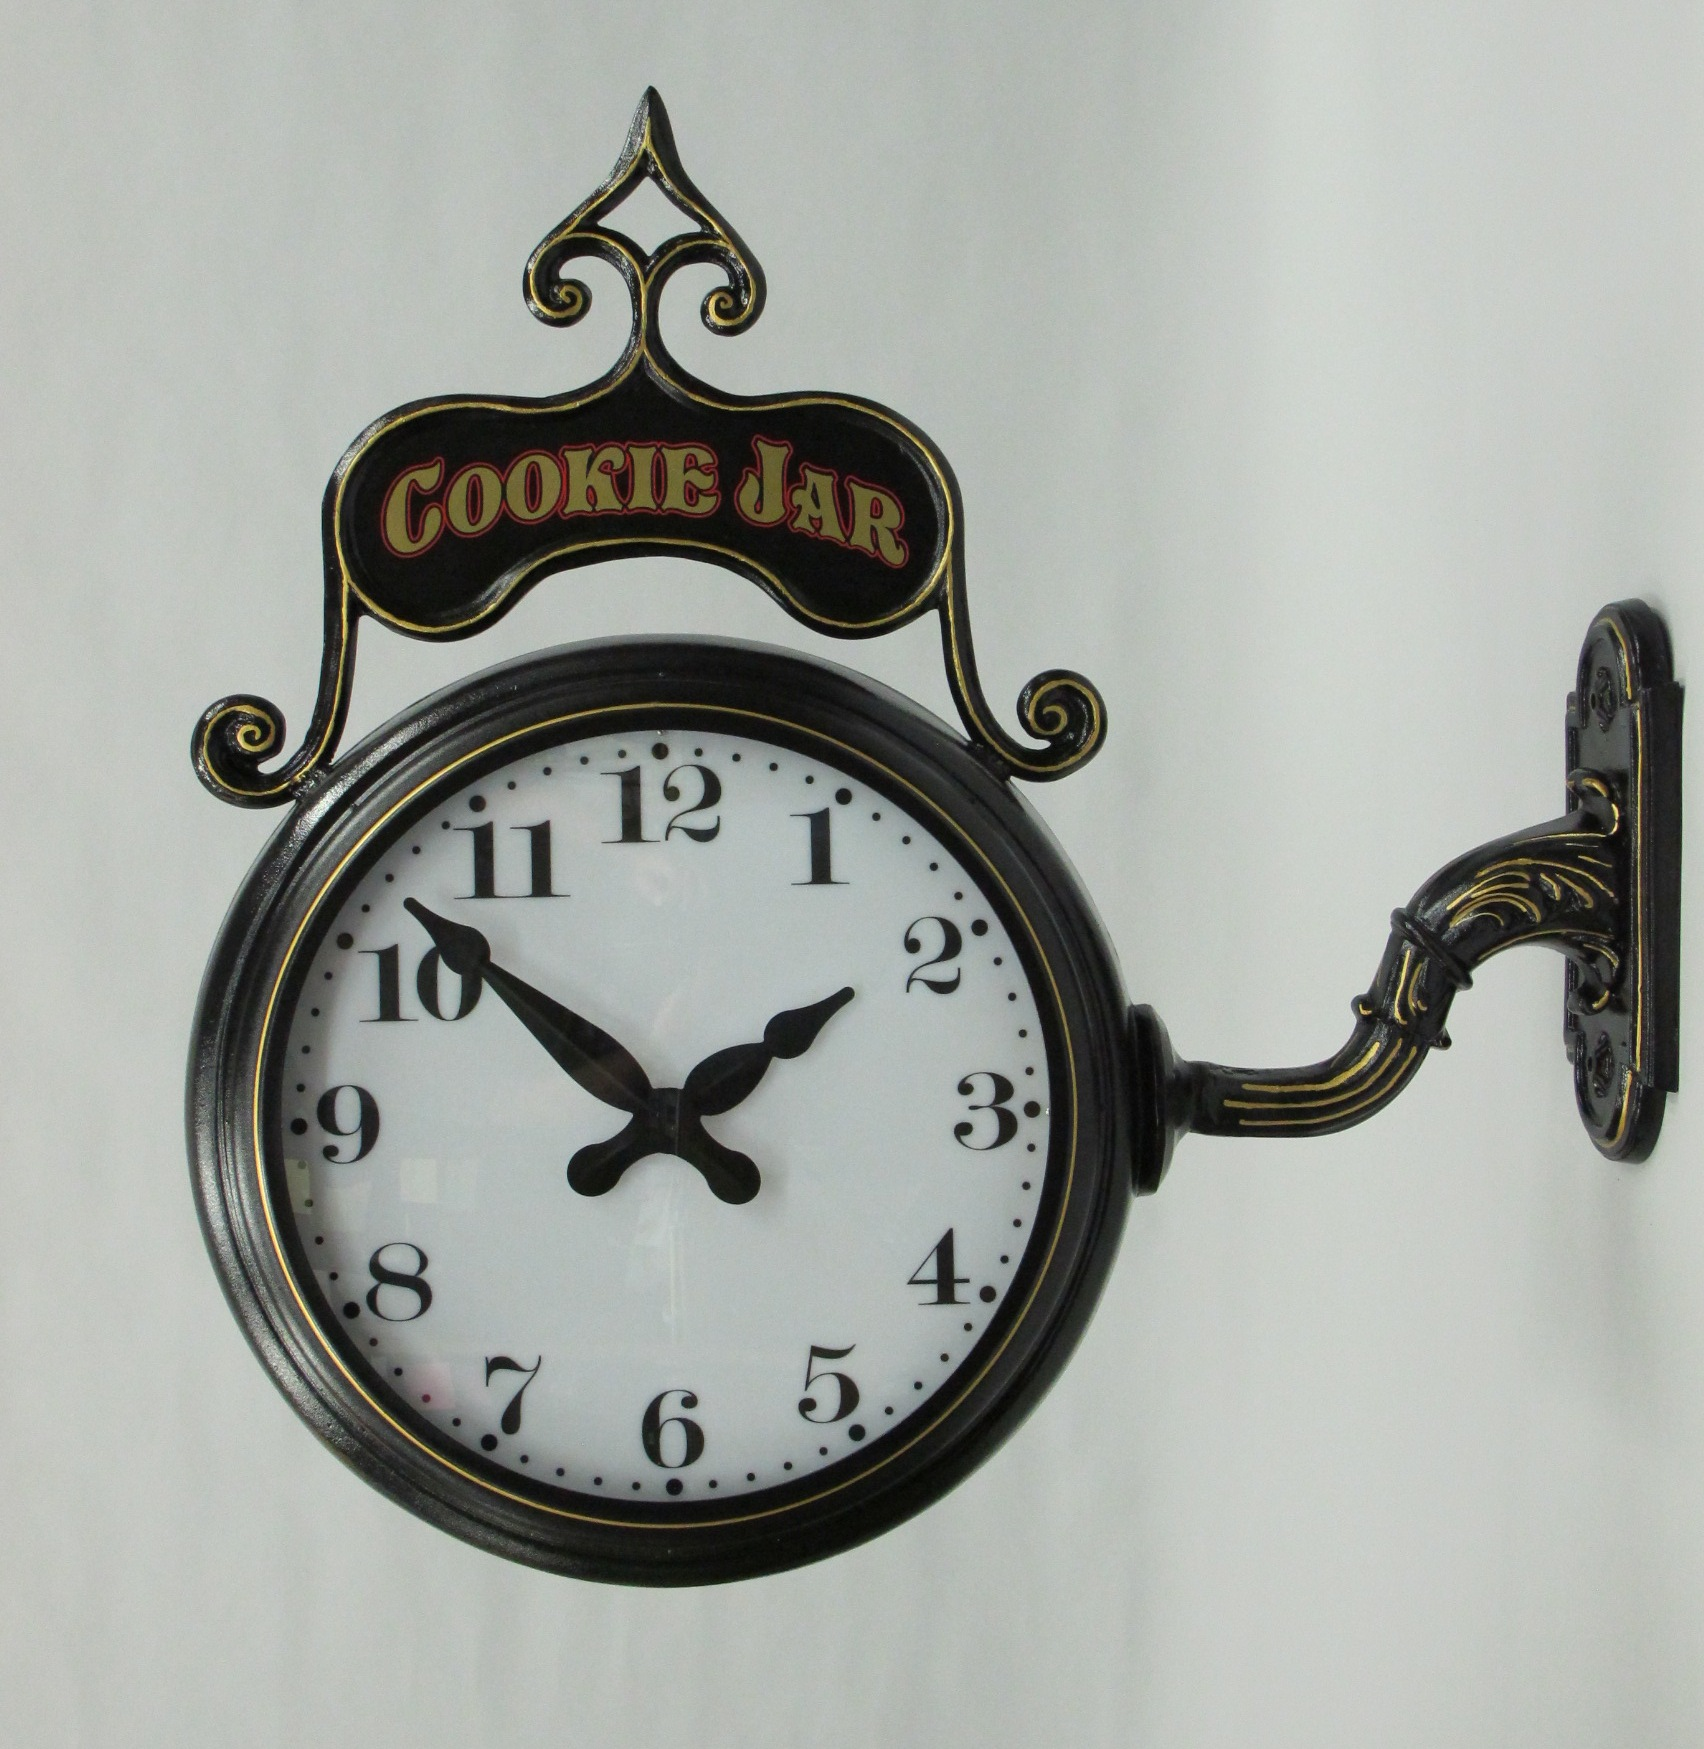 Double Faced Bracket Wall Clock Illuminated Automatic By